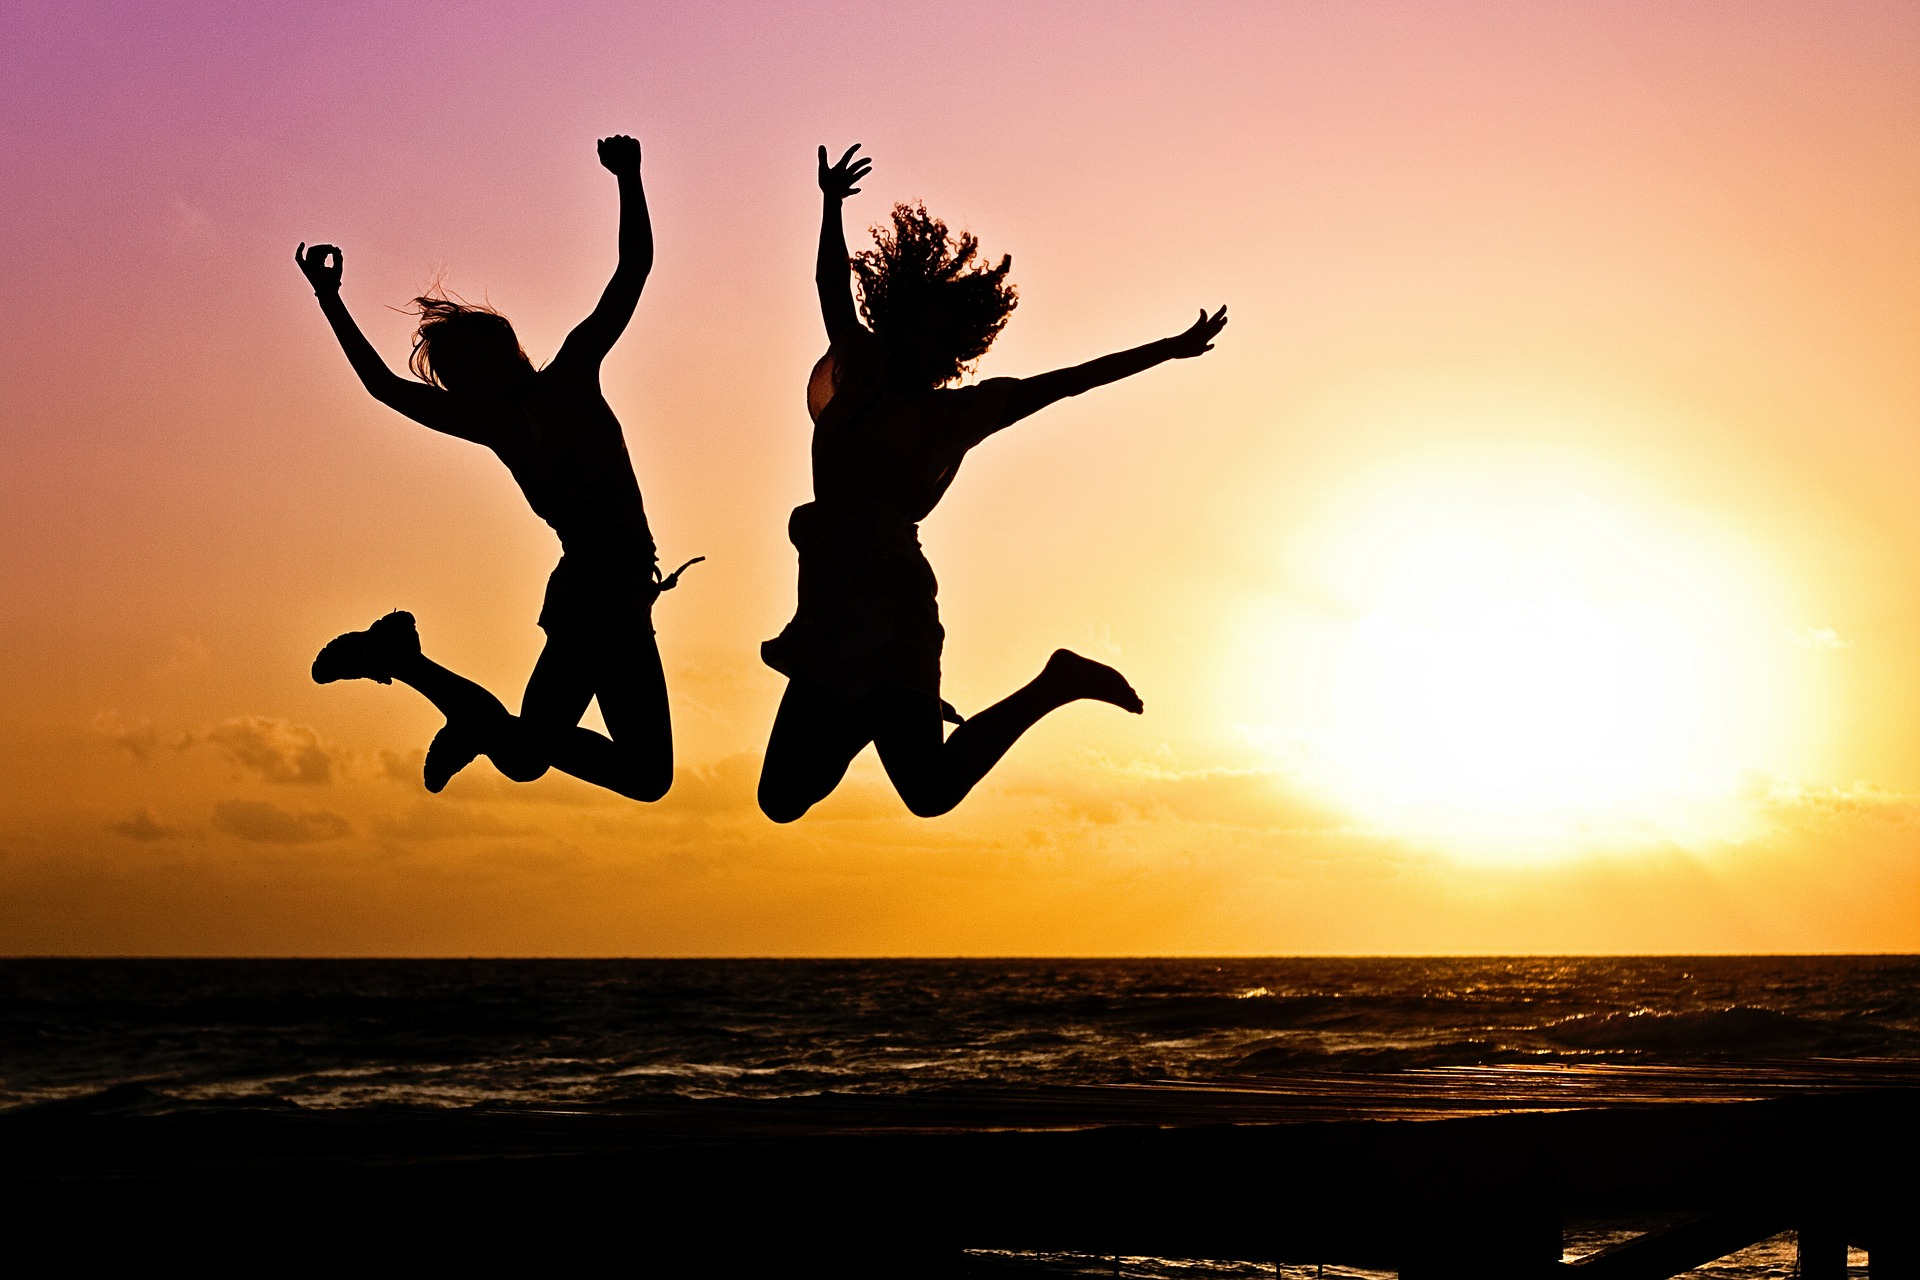 Image: two silhouettes jumping in the air with sunset background